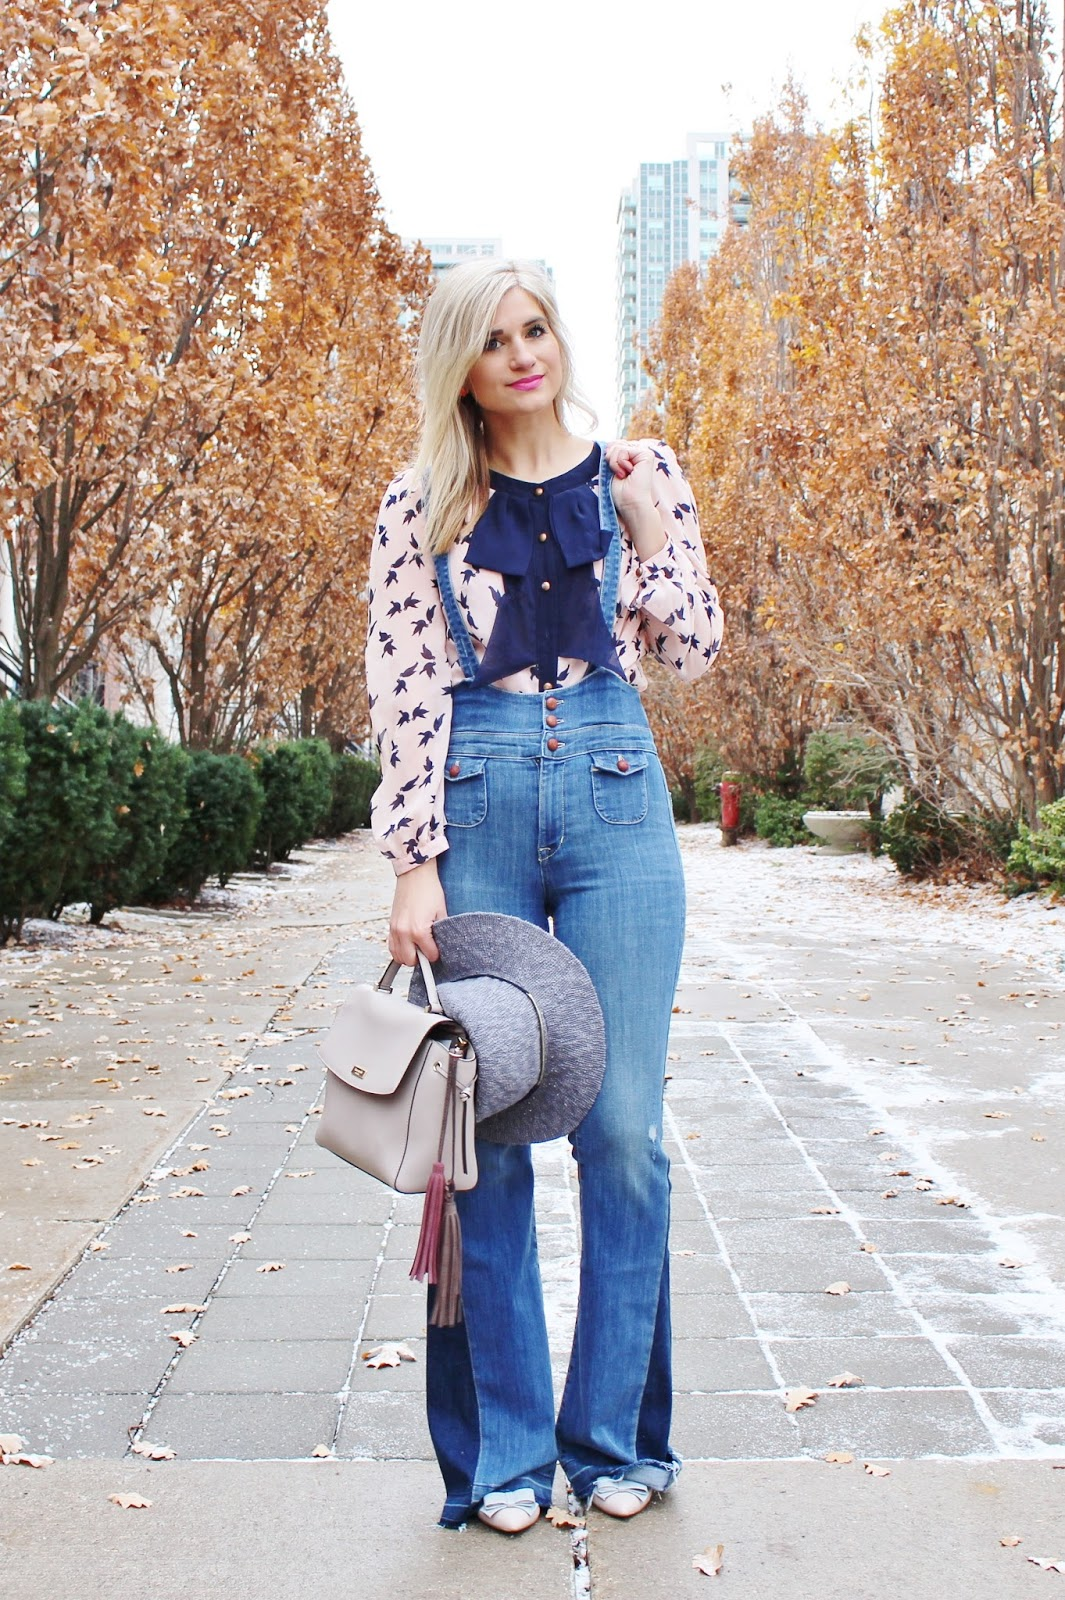 Bijuleni - Boho Look - Fidelity Denim Gwen Overall jeans, pussy bow blouse, bows heels and pink wool coat